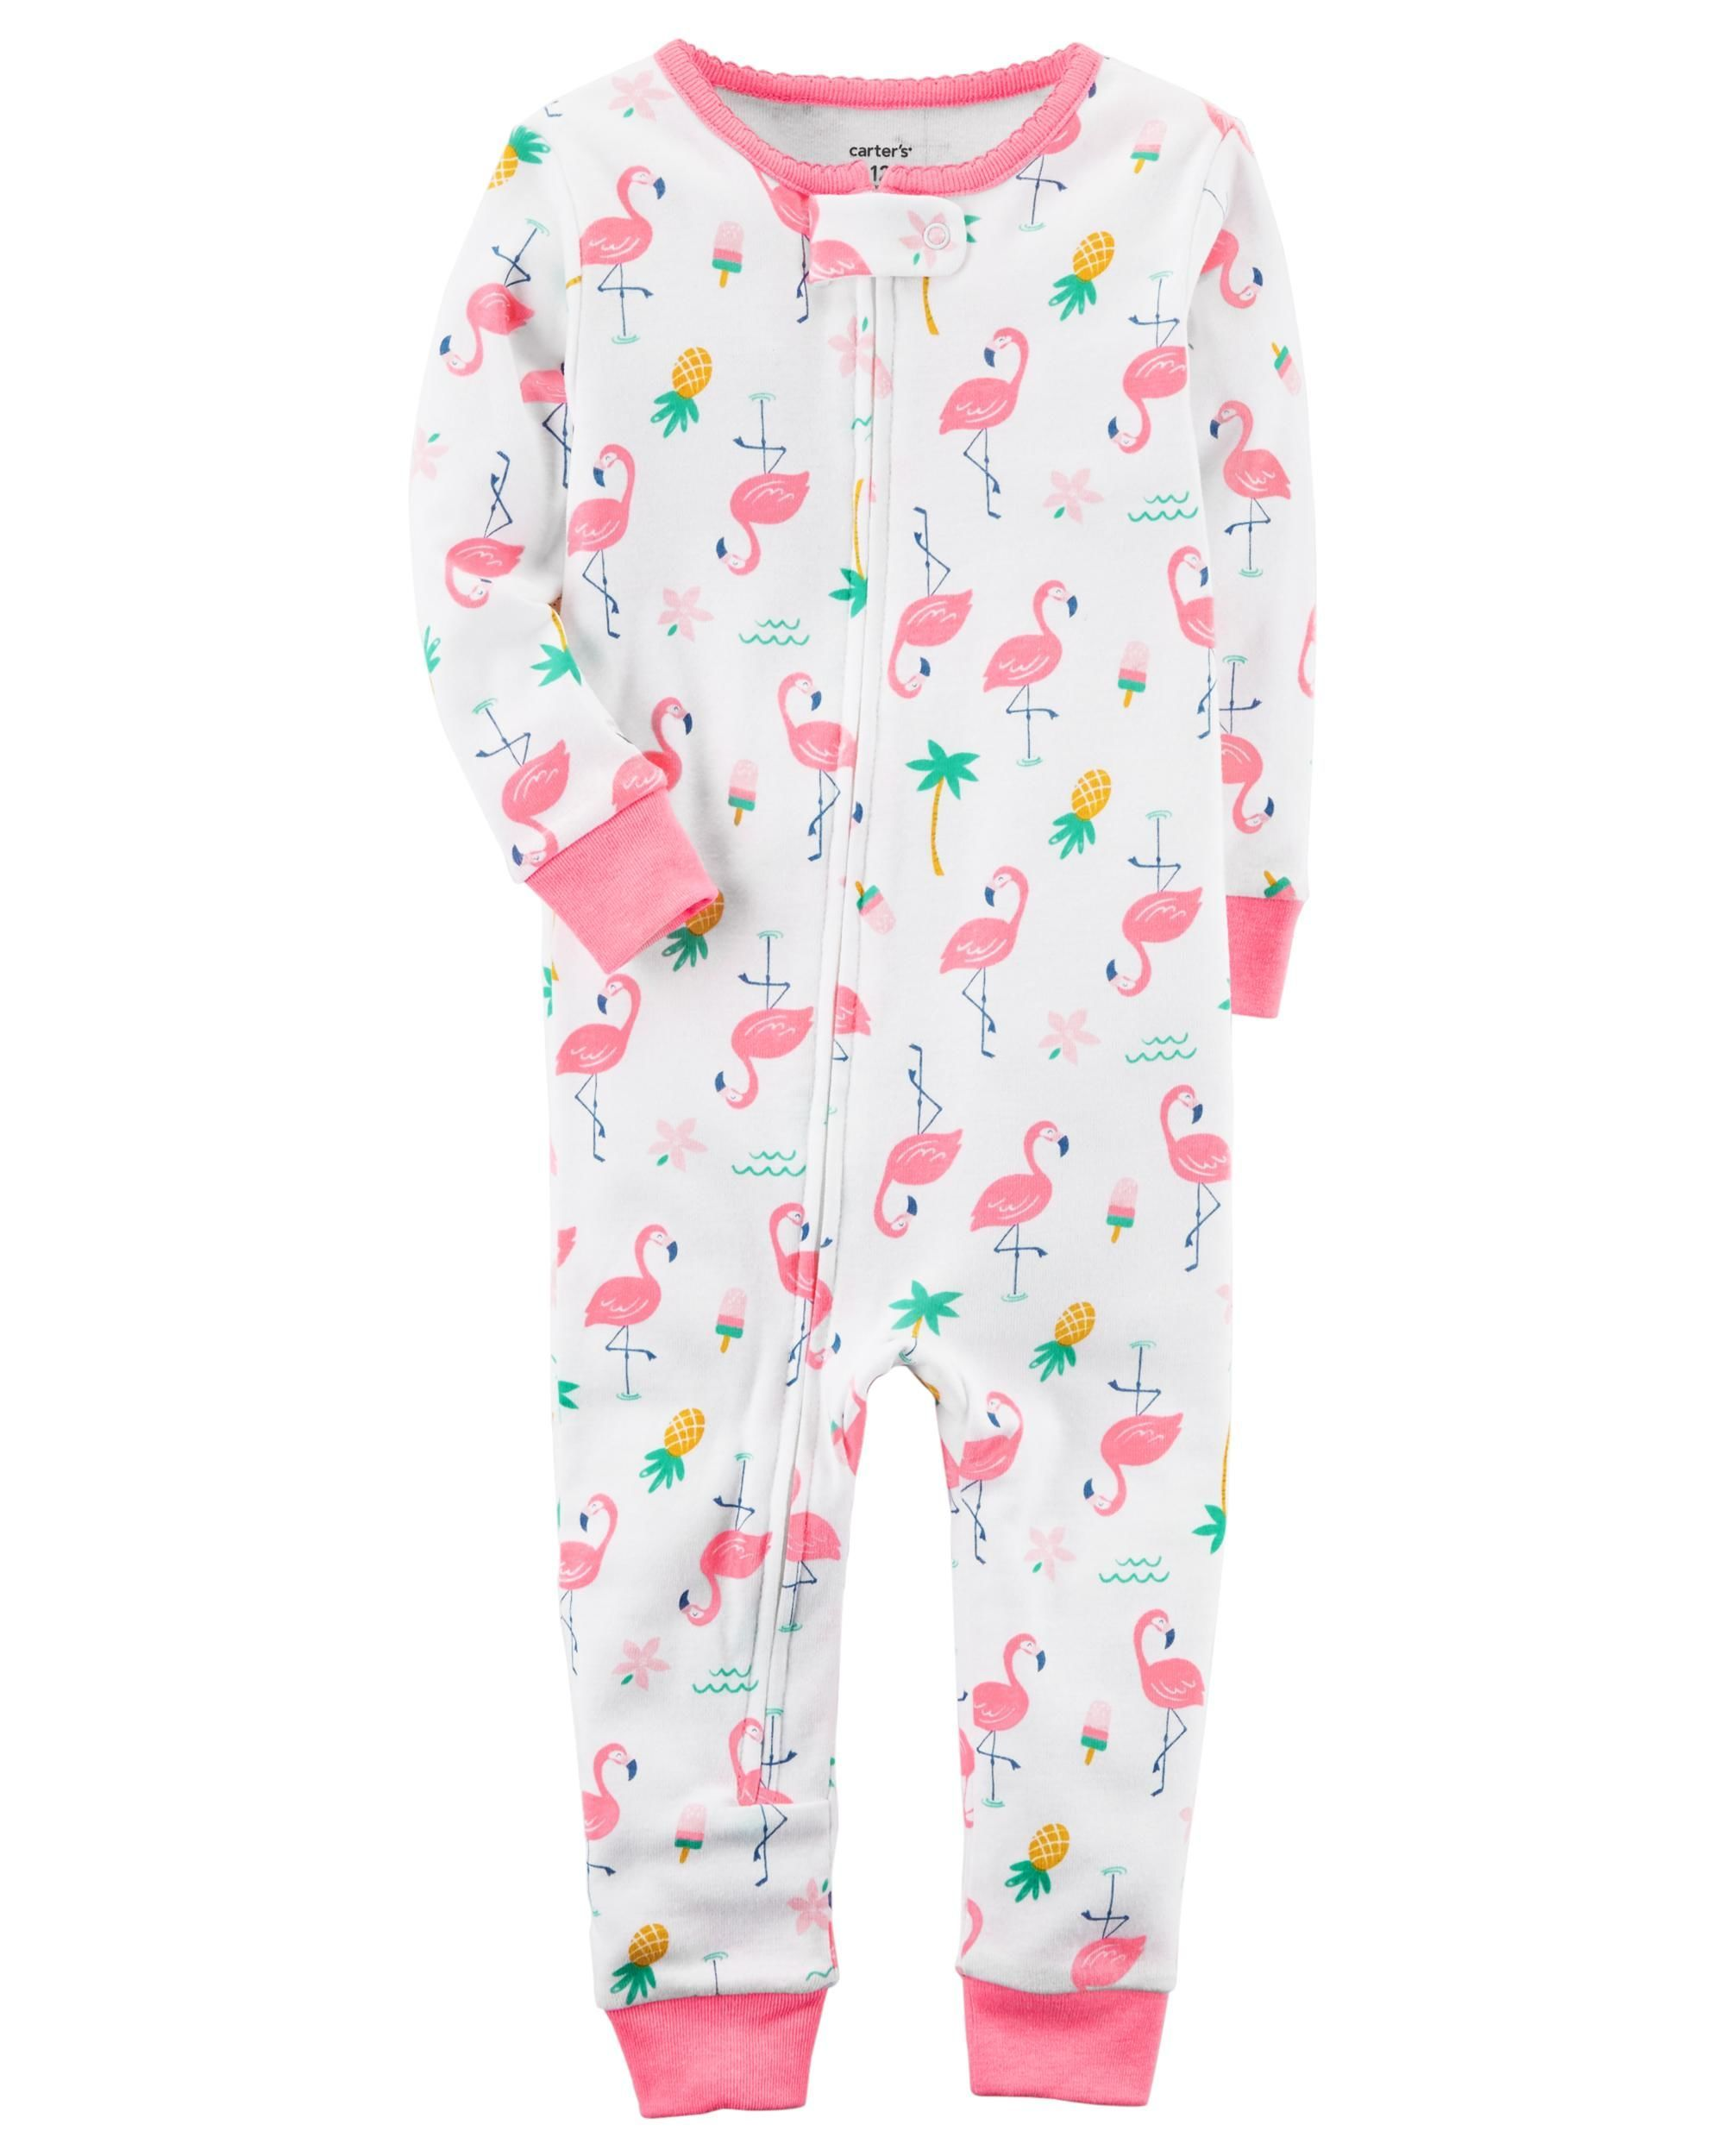 494ce586a044 Baby Girl 1-Piece Neon Snug Fit Cotton Footless PJs